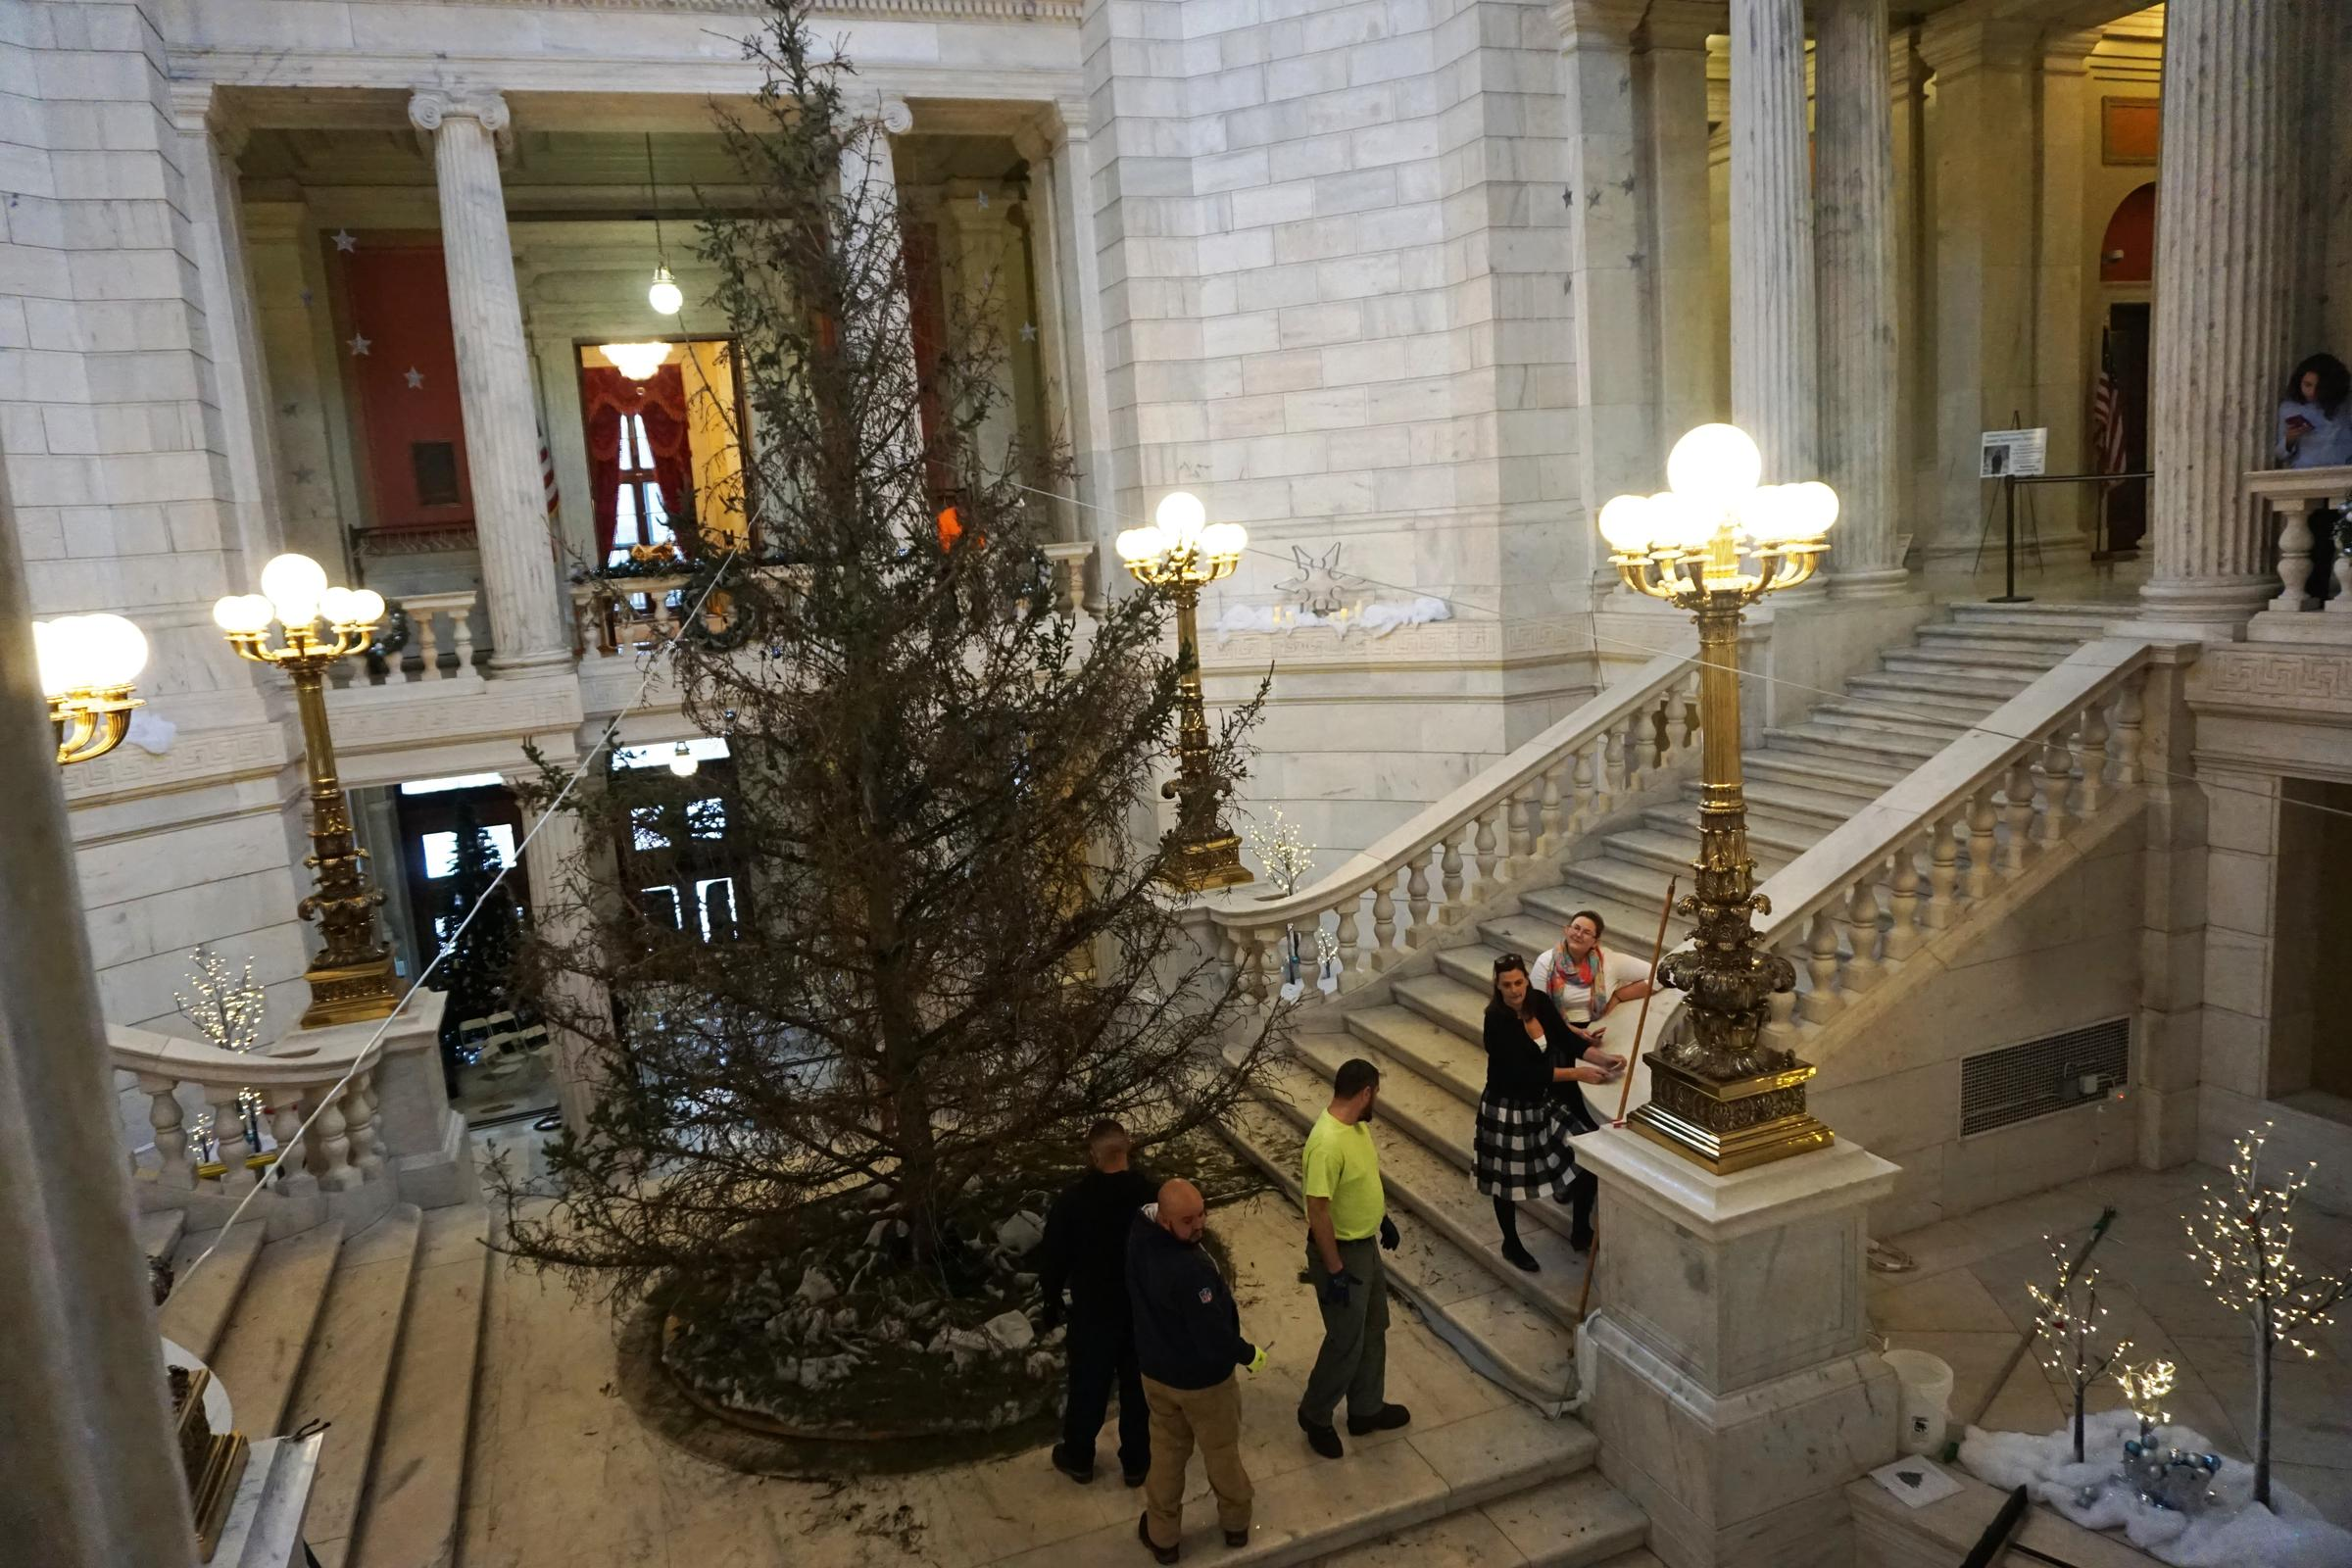 The RI Statehouse Christmas Tree In Minutes Before It Was Taken Down